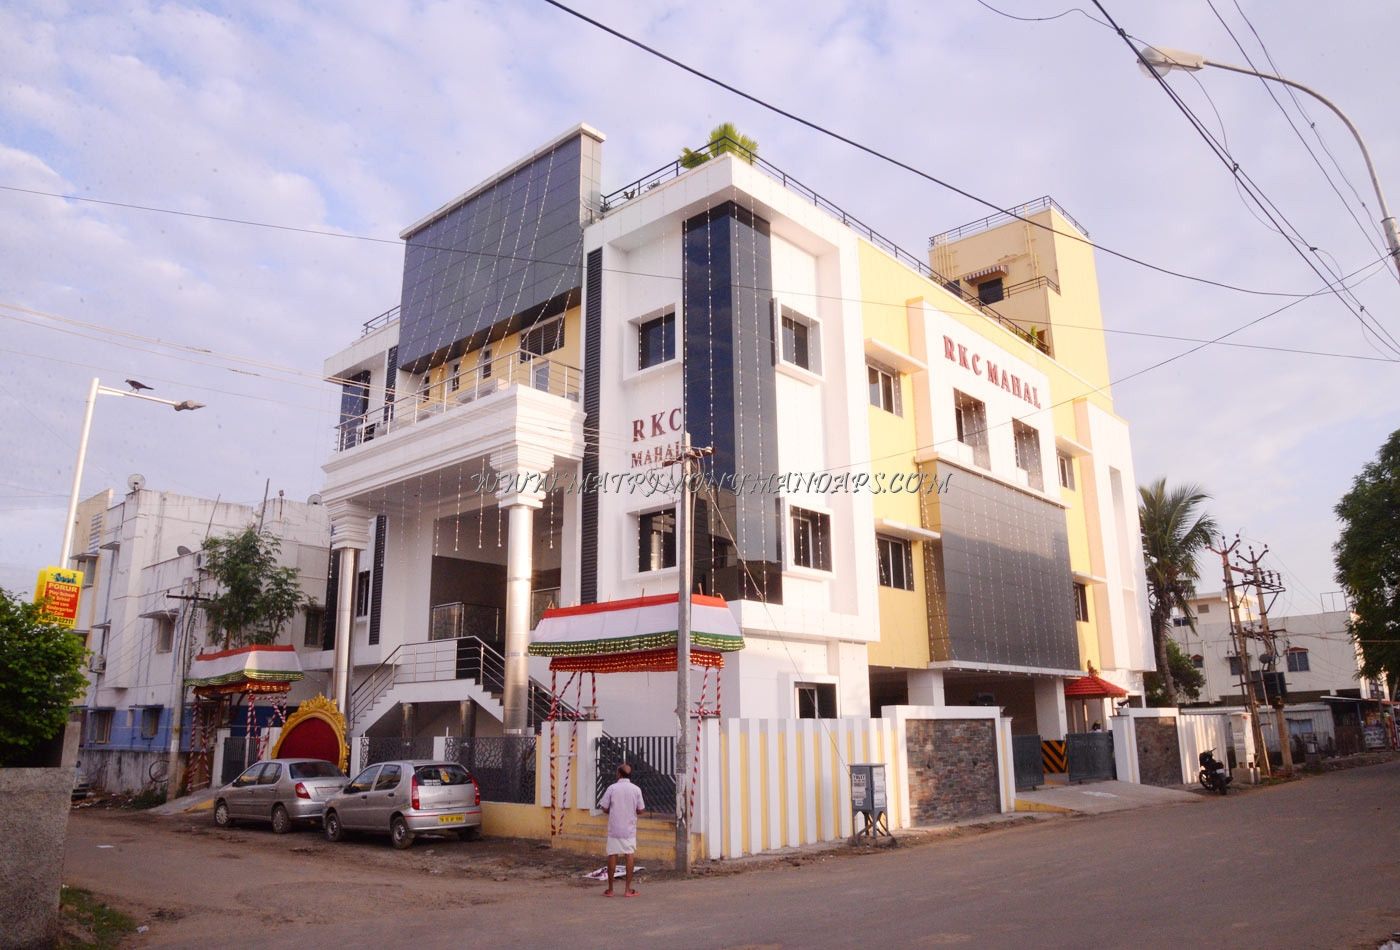 Find the availability of the RKC Mahal (A/C) in Porur, Chennai and avail special offers